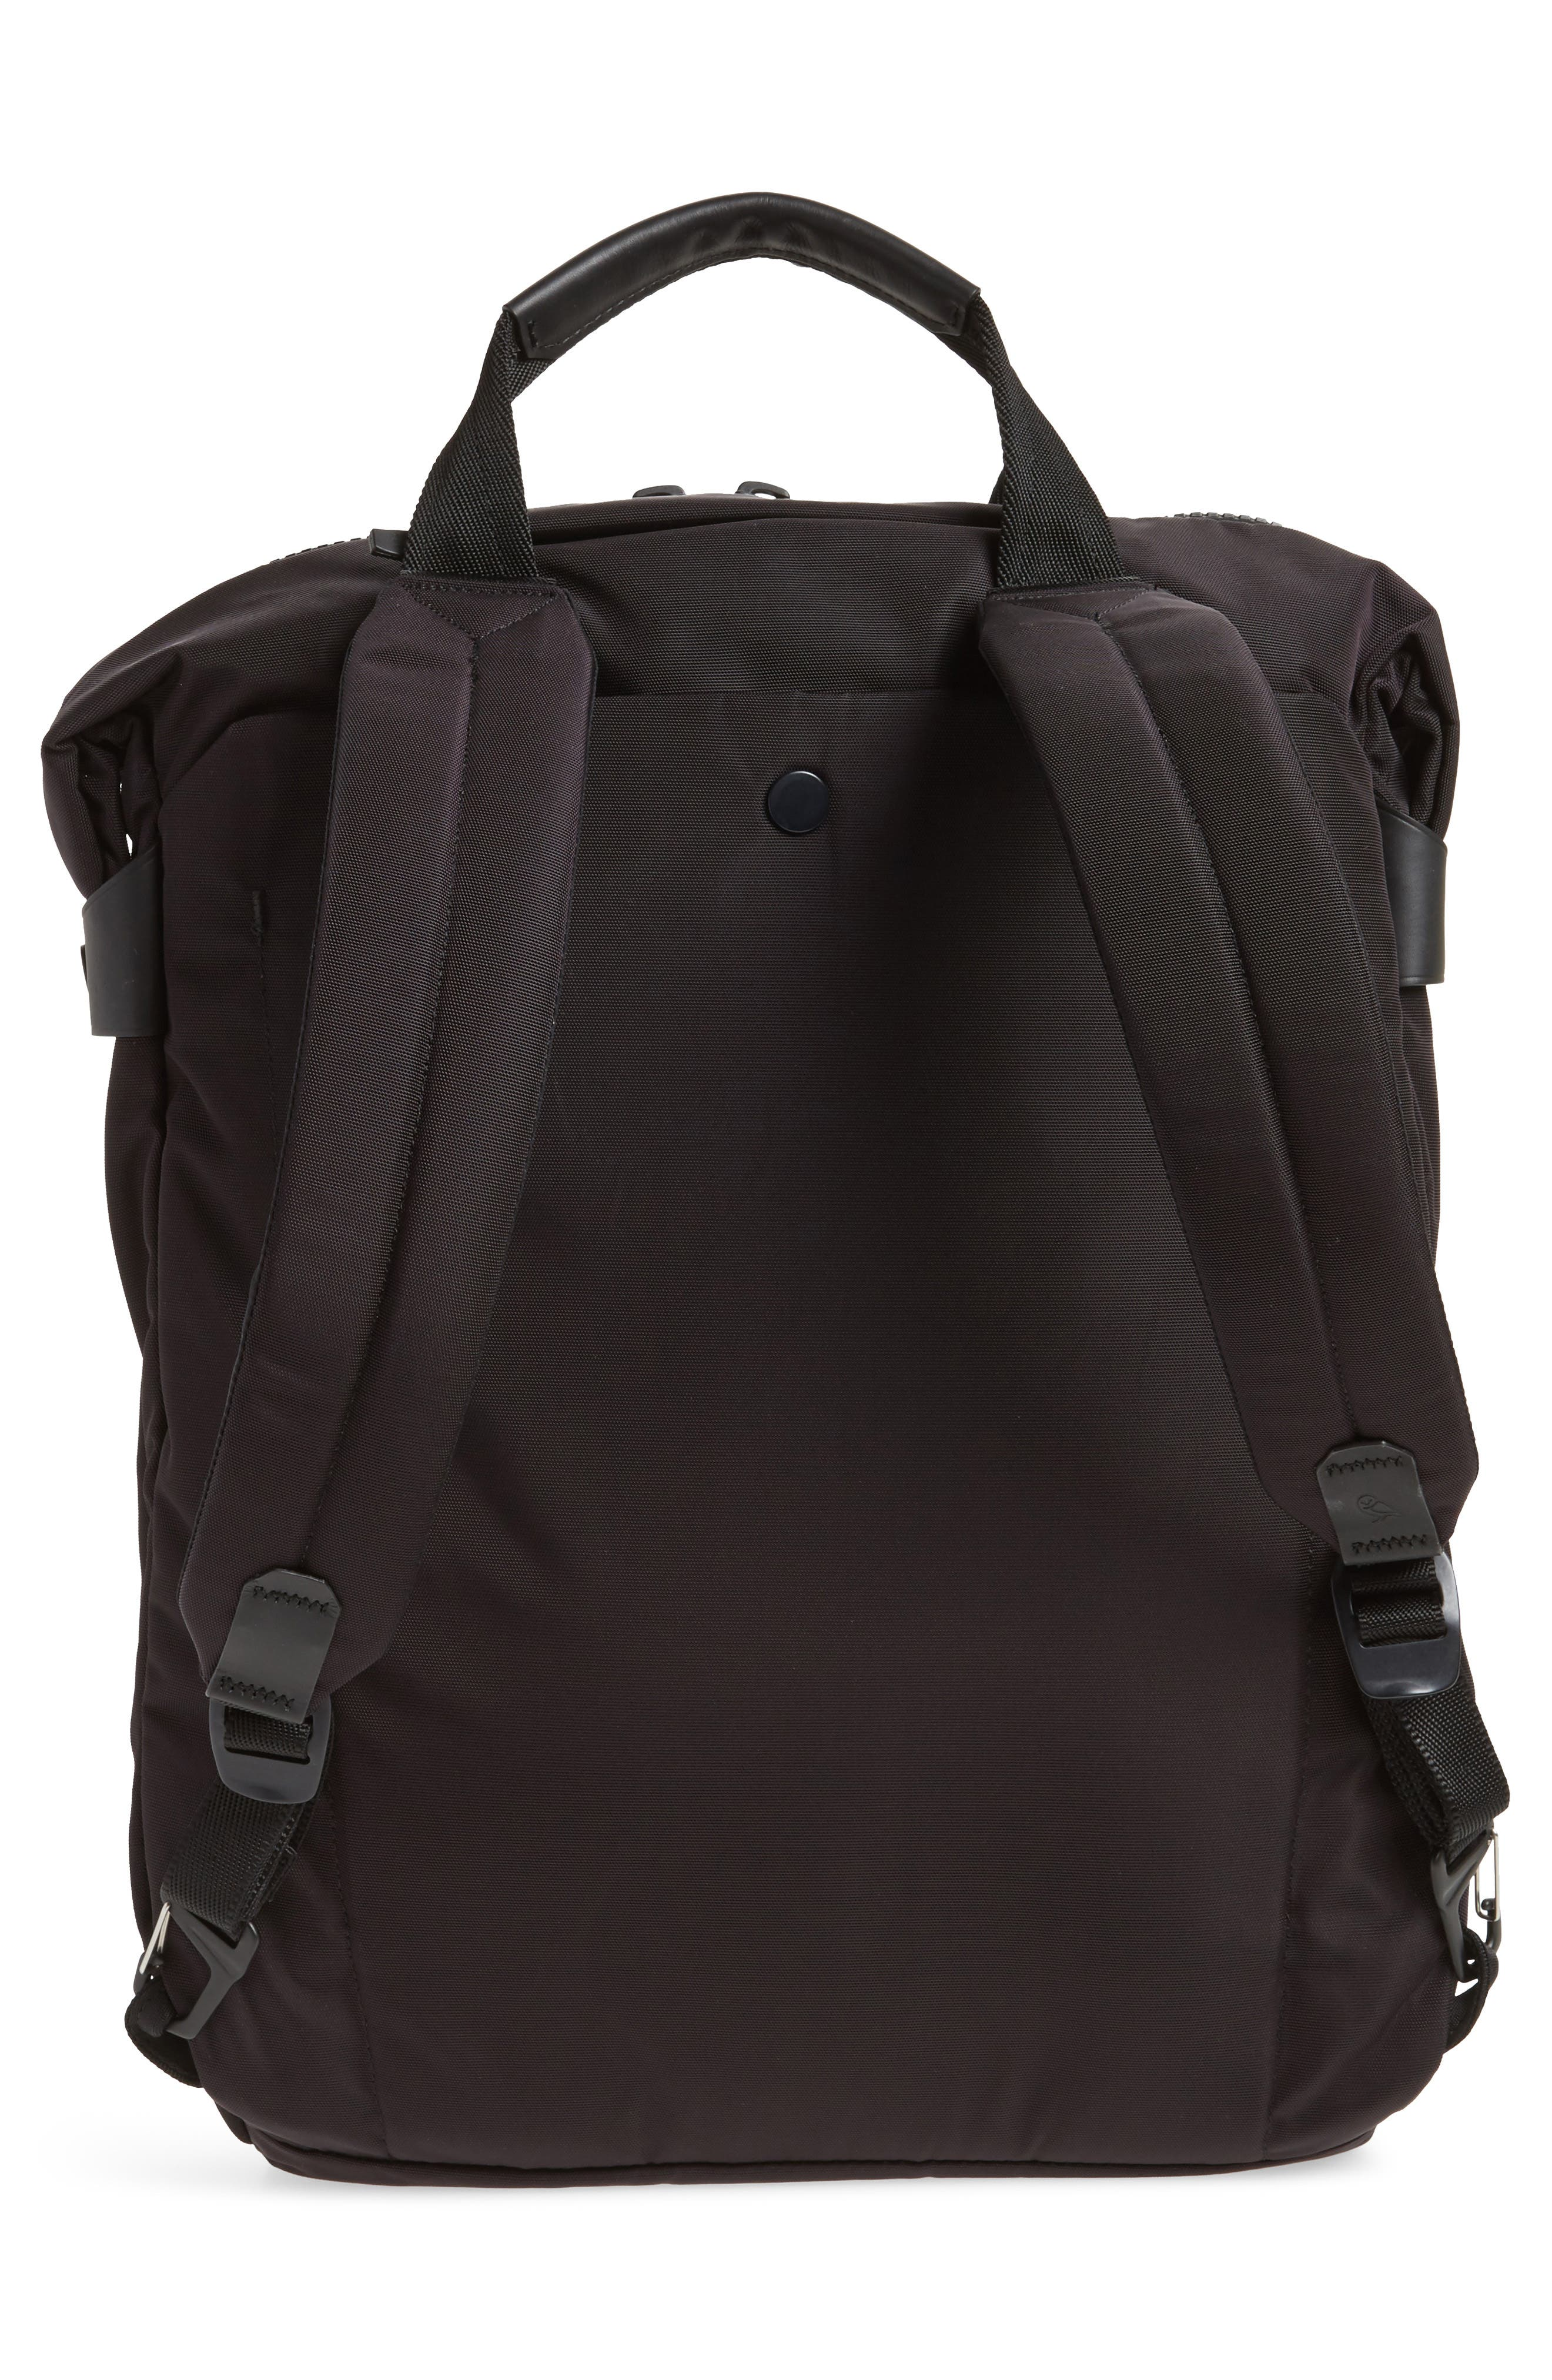 Duo Convertible Backpack,                             Alternate thumbnail 3, color,                             001